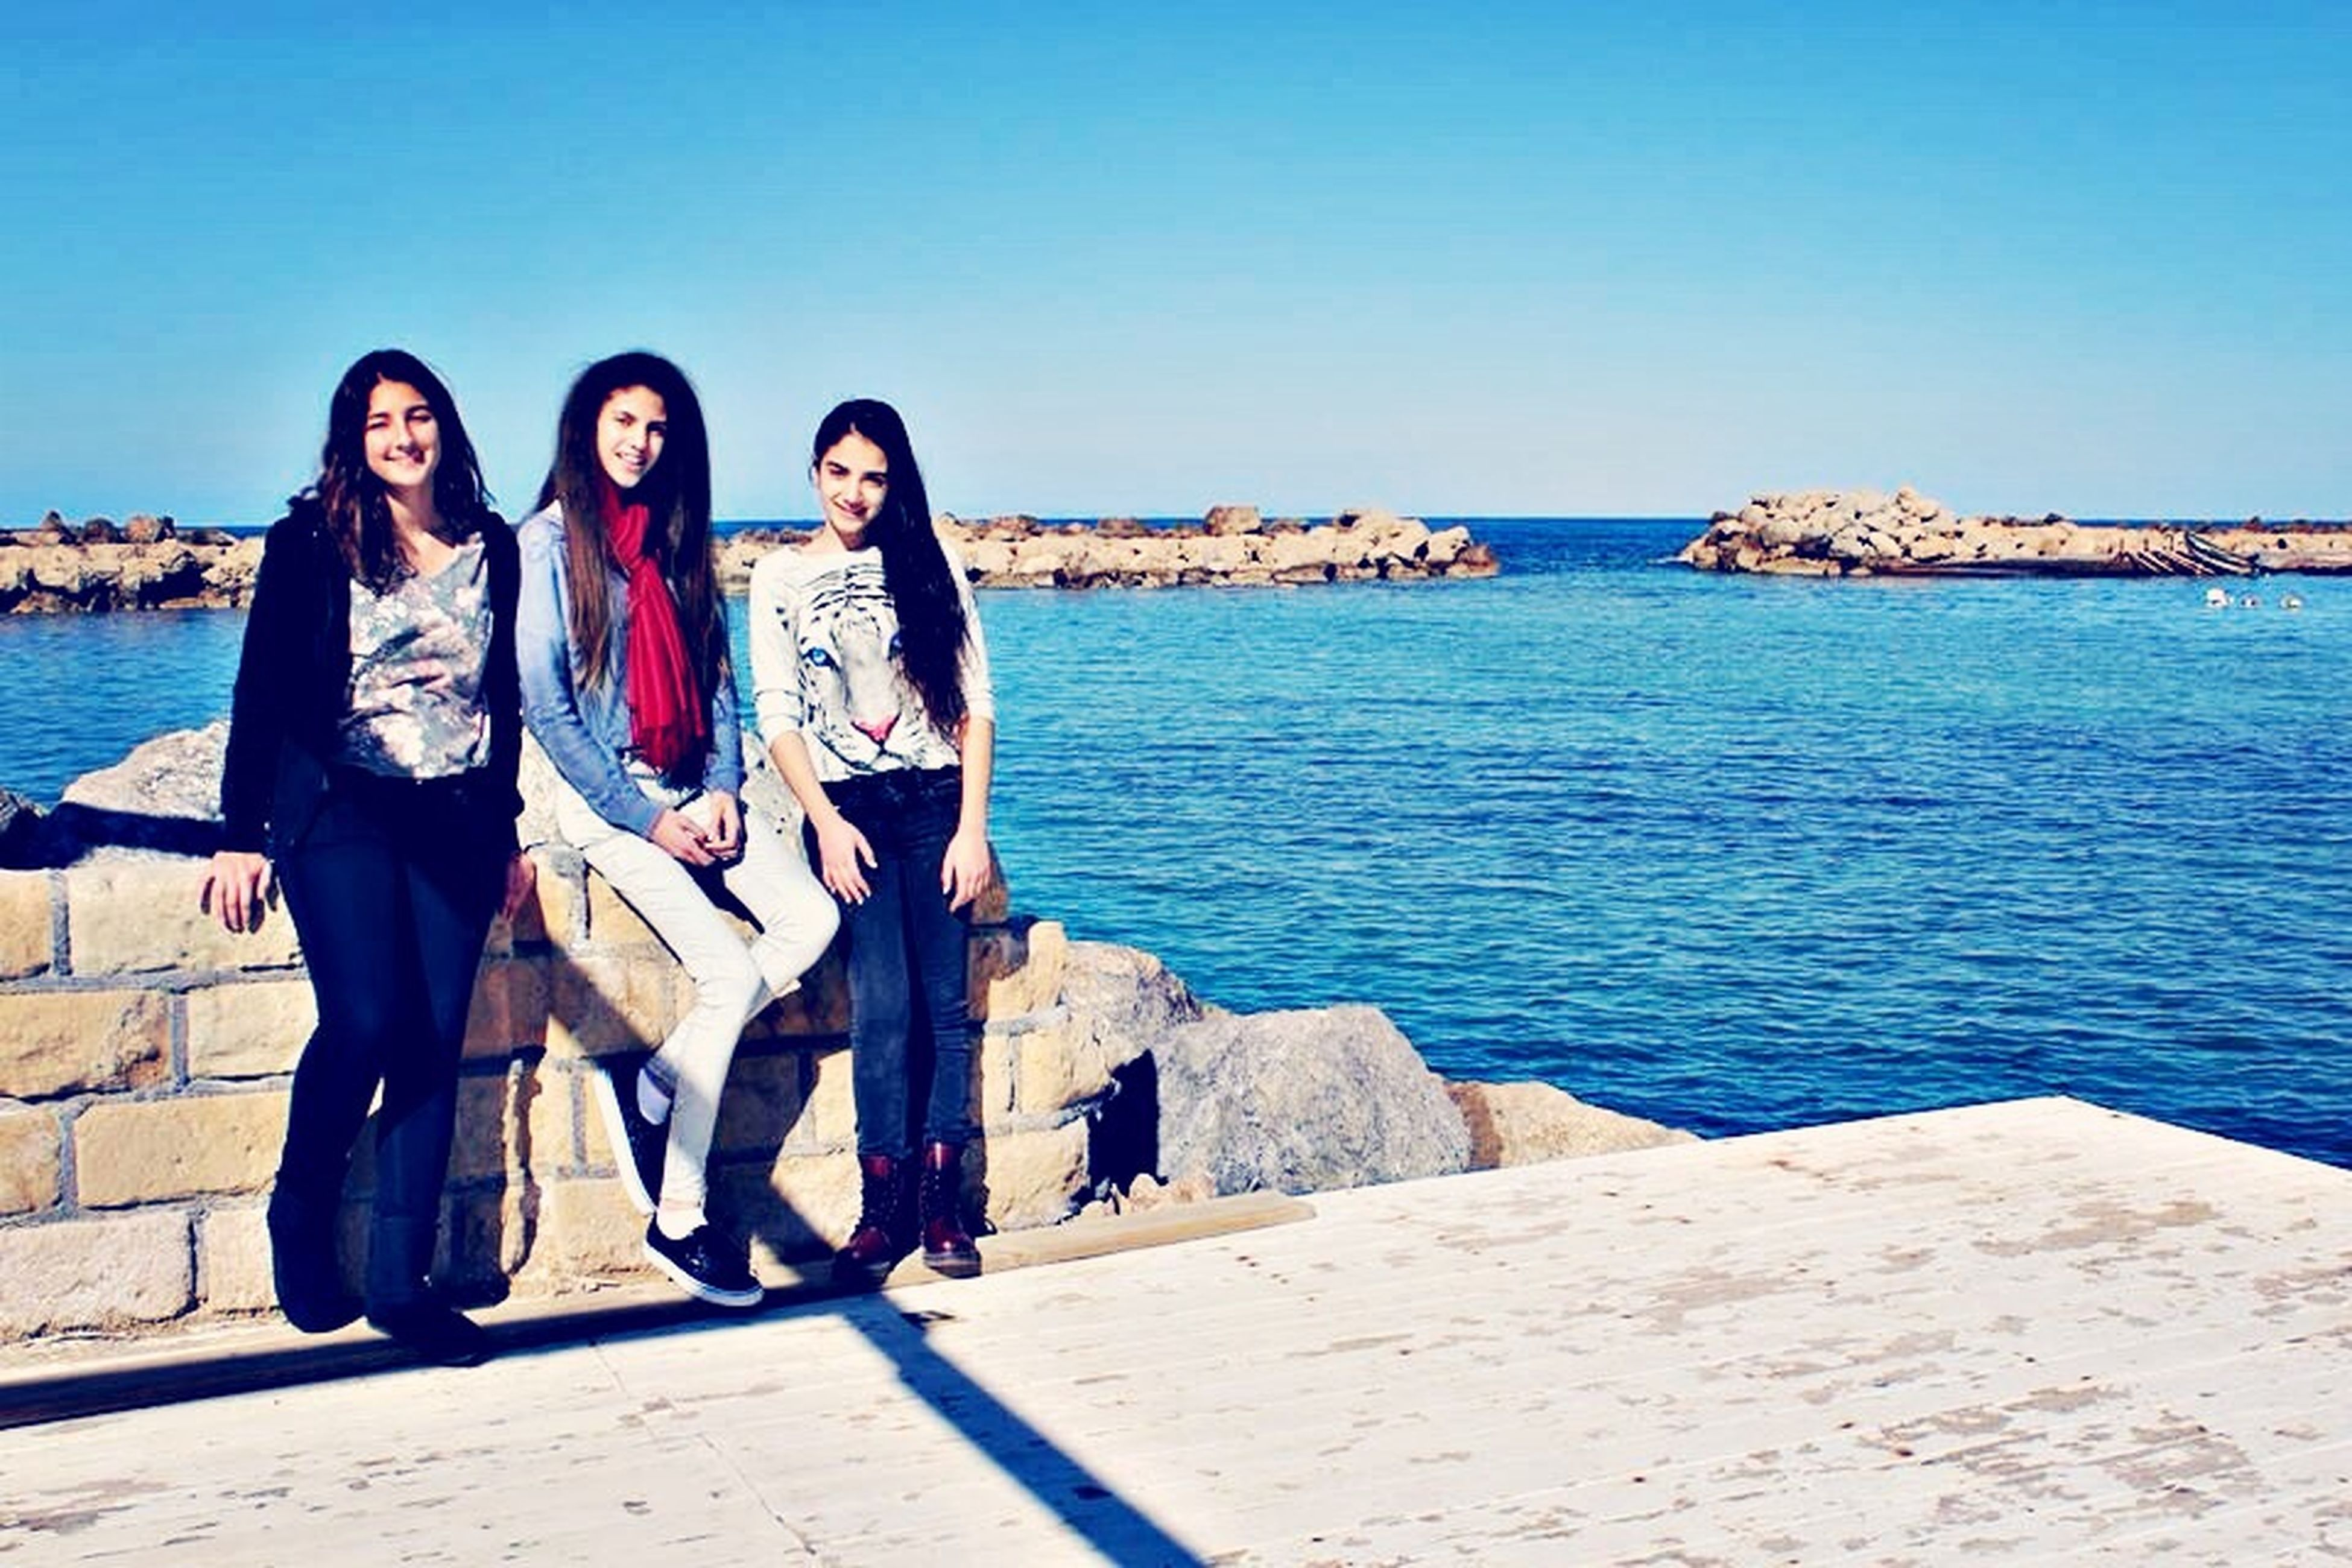 water, clear sky, lifestyles, sea, leisure activity, blue, full length, casual clothing, standing, copy space, young adult, vacations, person, togetherness, sunlight, young women, horizon over water, beach